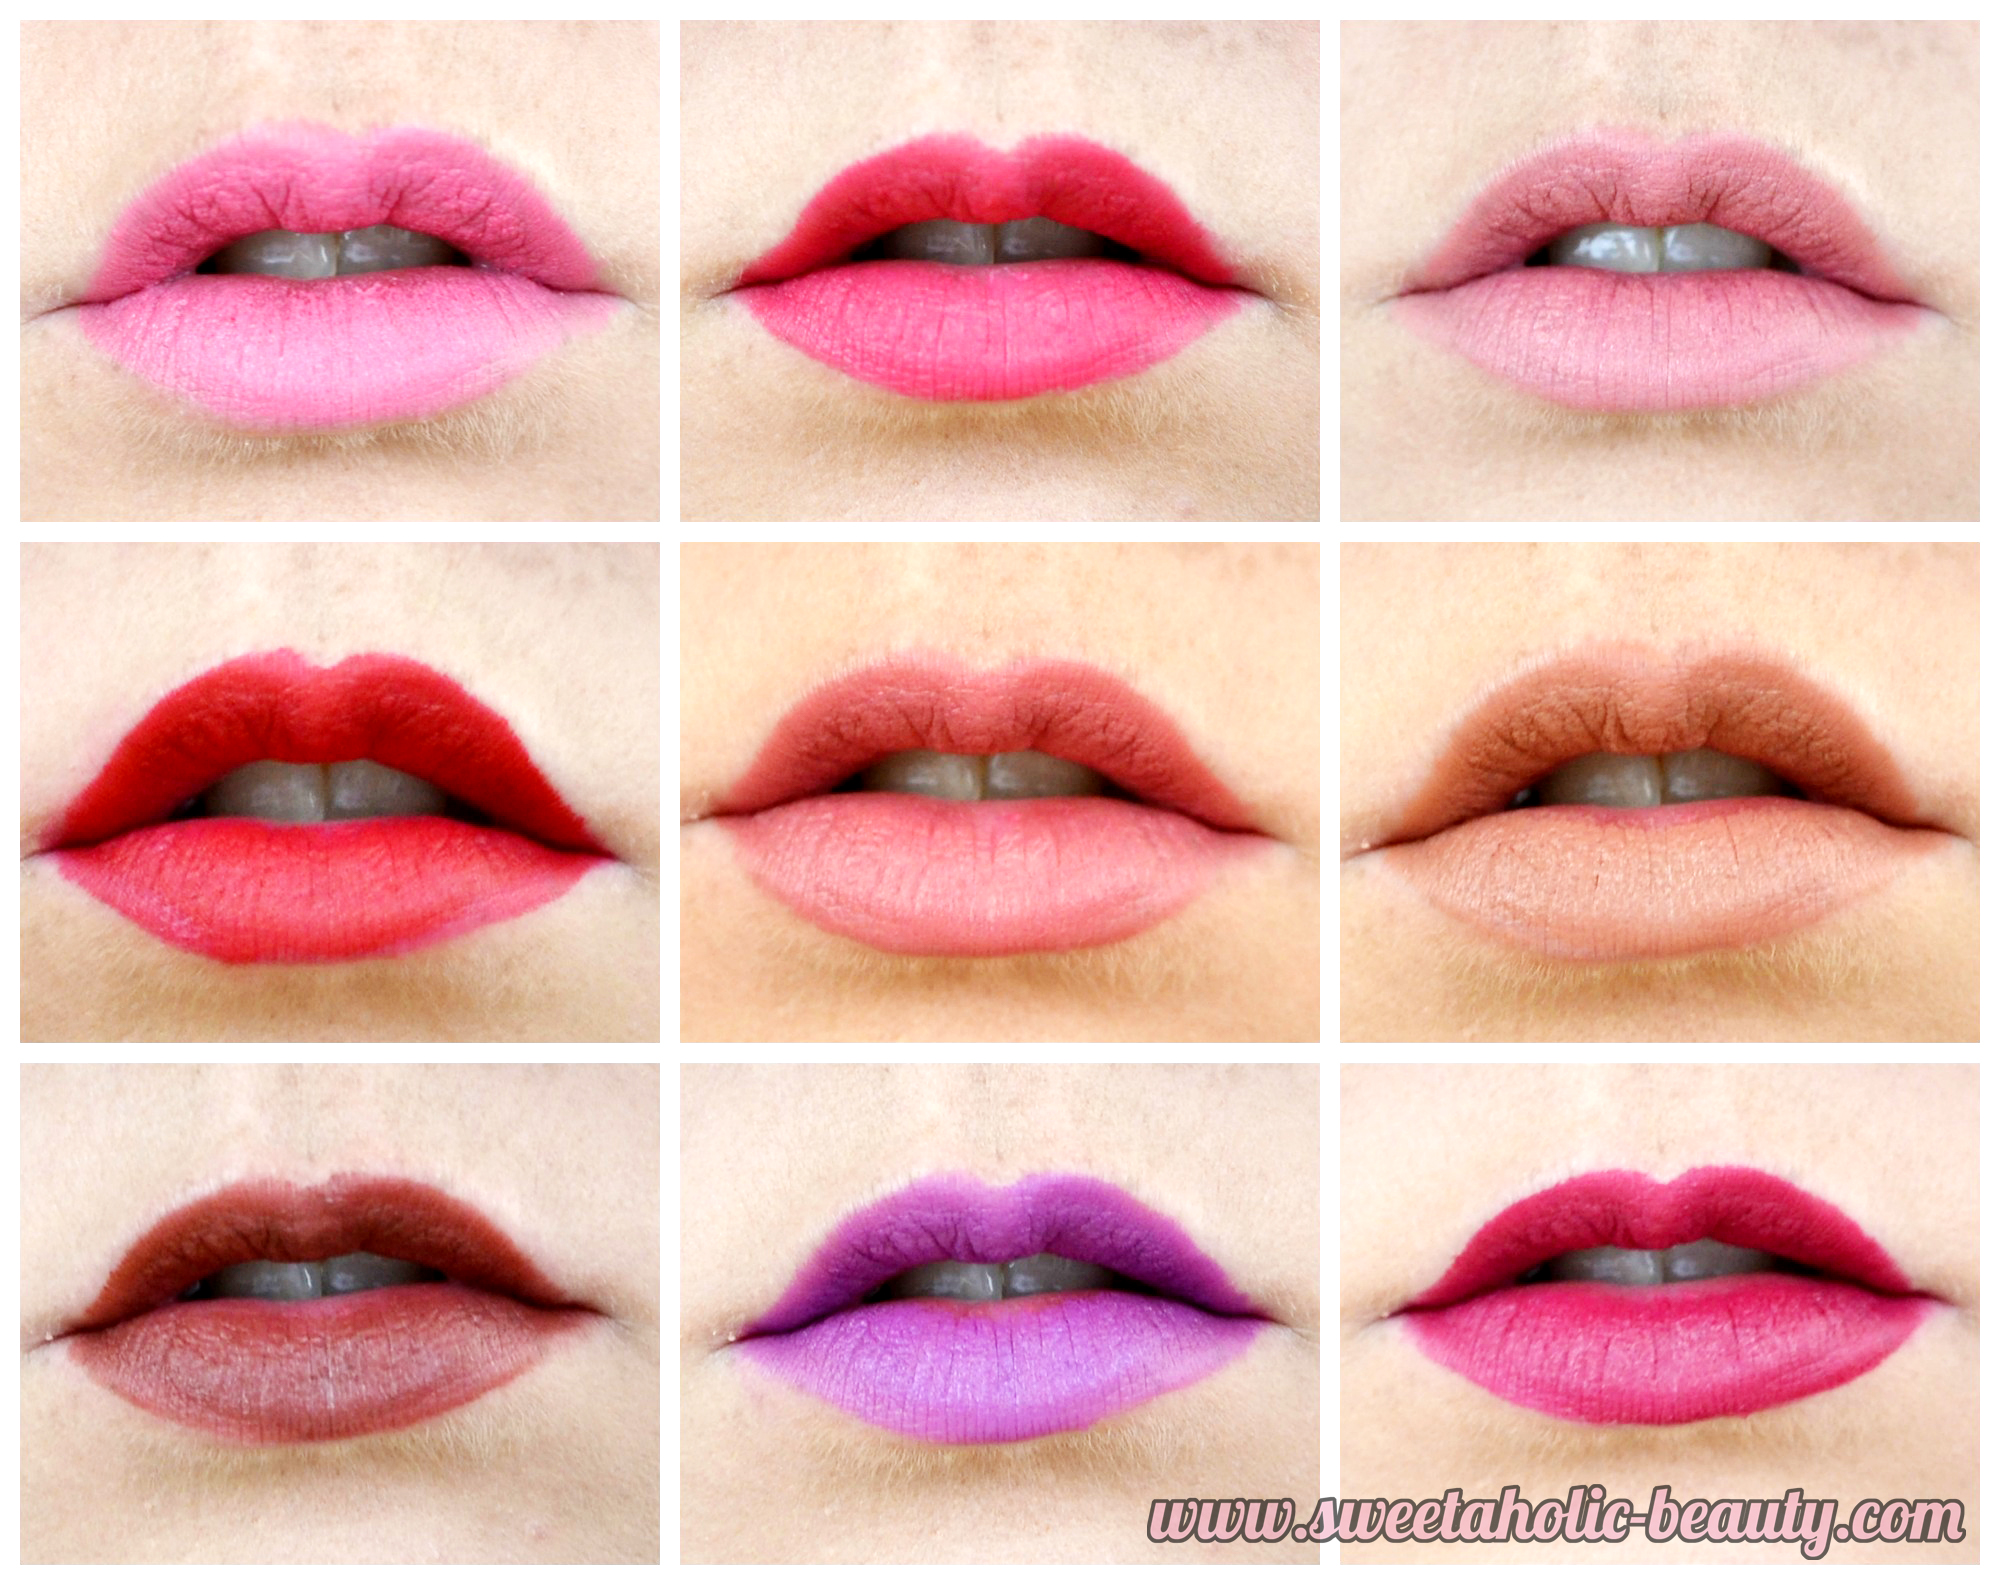 Rimmel London The Only 1 Matte Lipstick Collection Review & Swatches - Sweetaholic Beauty